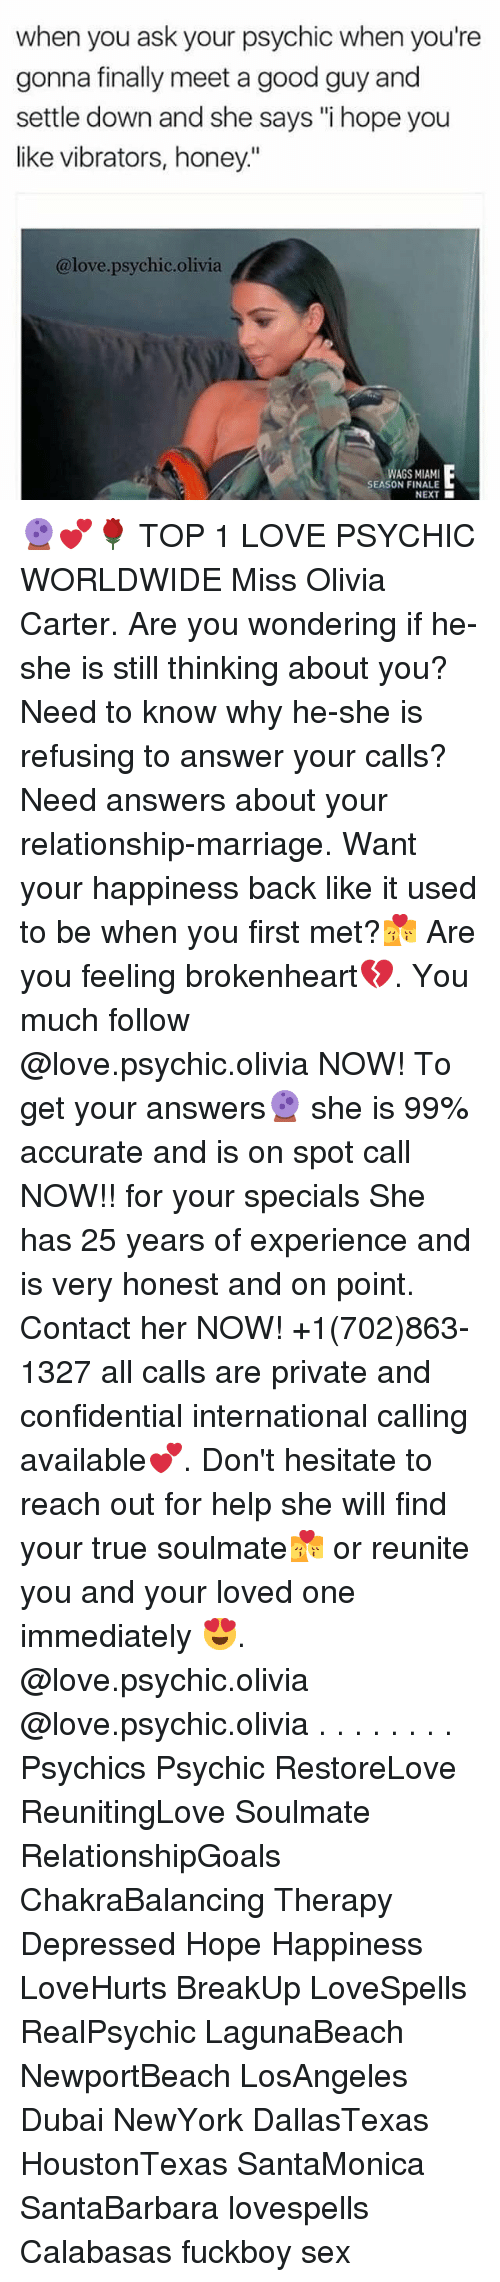 """brokenheart: when you ask your psychic when you're  gonna finally meet a good guy and  settle down and she says """"i hope you  like vibrators, honey.""""  @love.psychic.olivia  WAGS MIAMI  SEASON FINALE  NEXT 🔮💕🌹 TOP 1 LOVE PSYCHIC WORLDWIDE Miss Olivia Carter. Are you wondering if he-she is still thinking about you? Need to know why he-she is refusing to answer your calls? Need answers about your relationship-marriage. Want your happiness back like it used to be when you first met?💏 Are you feeling brokenheart💔. You much follow @love.psychic.olivia NOW! To get your answers🔮 she is 99% accurate and is on spot call NOW!! for your specials She has 25 years of experience and is very honest and on point. Contact her NOW! +1(702)863-1327 all calls are private and confidential international calling available💕. Don't hesitate to reach out for help she will find your true soulmate💏 or reunite you and your loved one immediately 😍. @love.psychic.olivia @love.psychic.olivia . . . . . . . . Psychics Psychic RestoreLove ReunitingLove Soulmate RelationshipGoals ChakraBalancing Therapy Depressed Hope Happiness LoveHurts BreakUp LoveSpells RealPsychic LagunaBeach NewportBeach LosAngeles Dubai NewYork DallasTexas HoustonTexas SantaMonica SantaBarbara lovespells Calabasas fuckboy sex"""